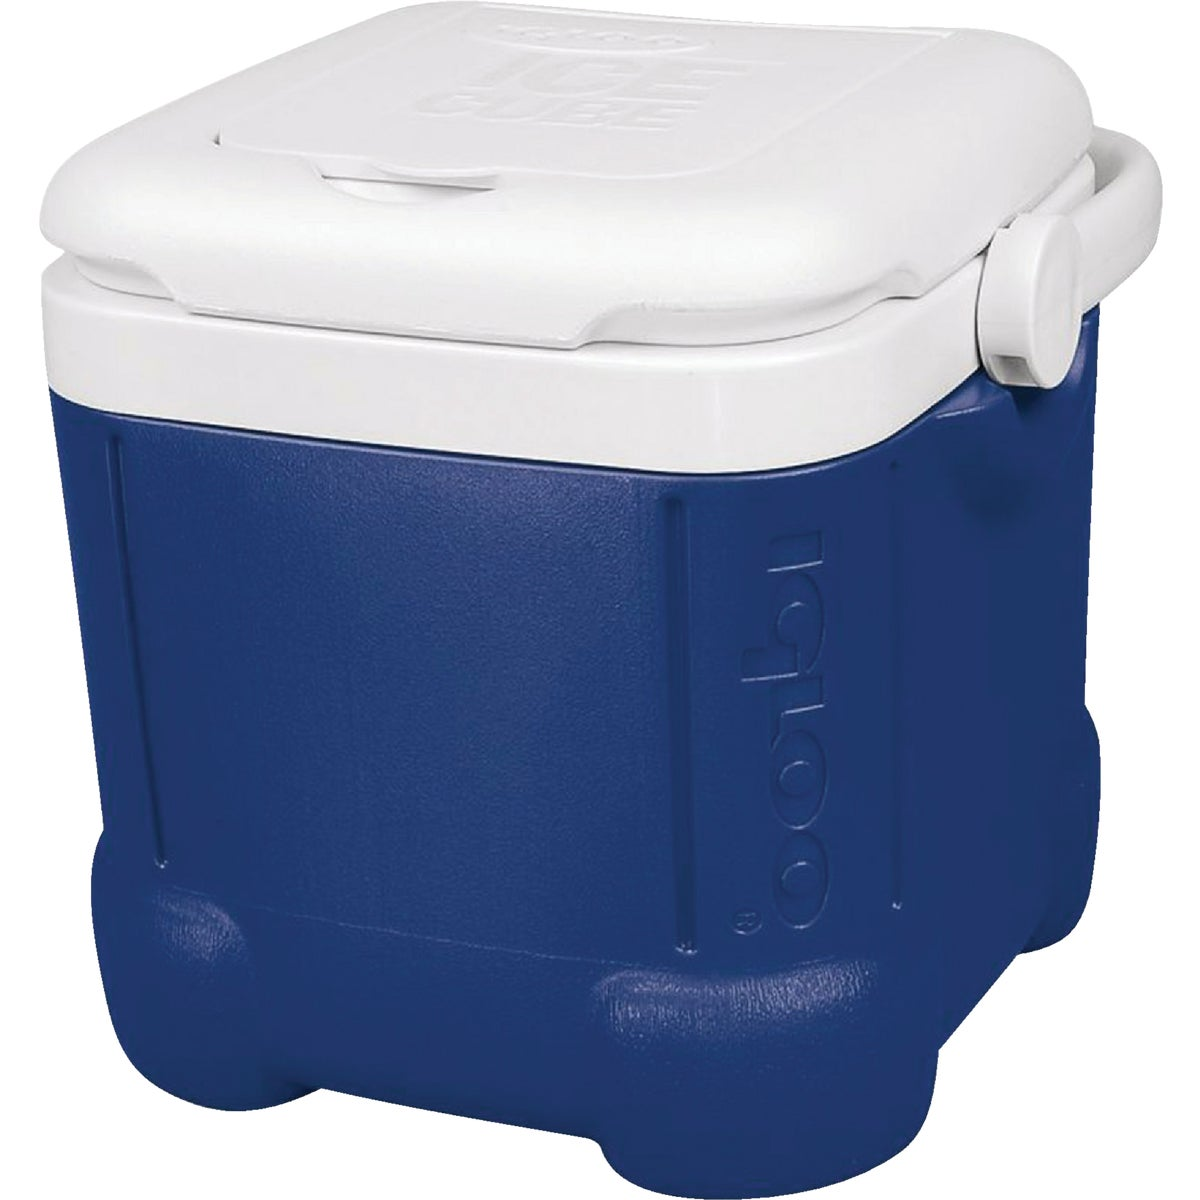 12QT ICECUBE COOLER - 43058 by Igloo Corp